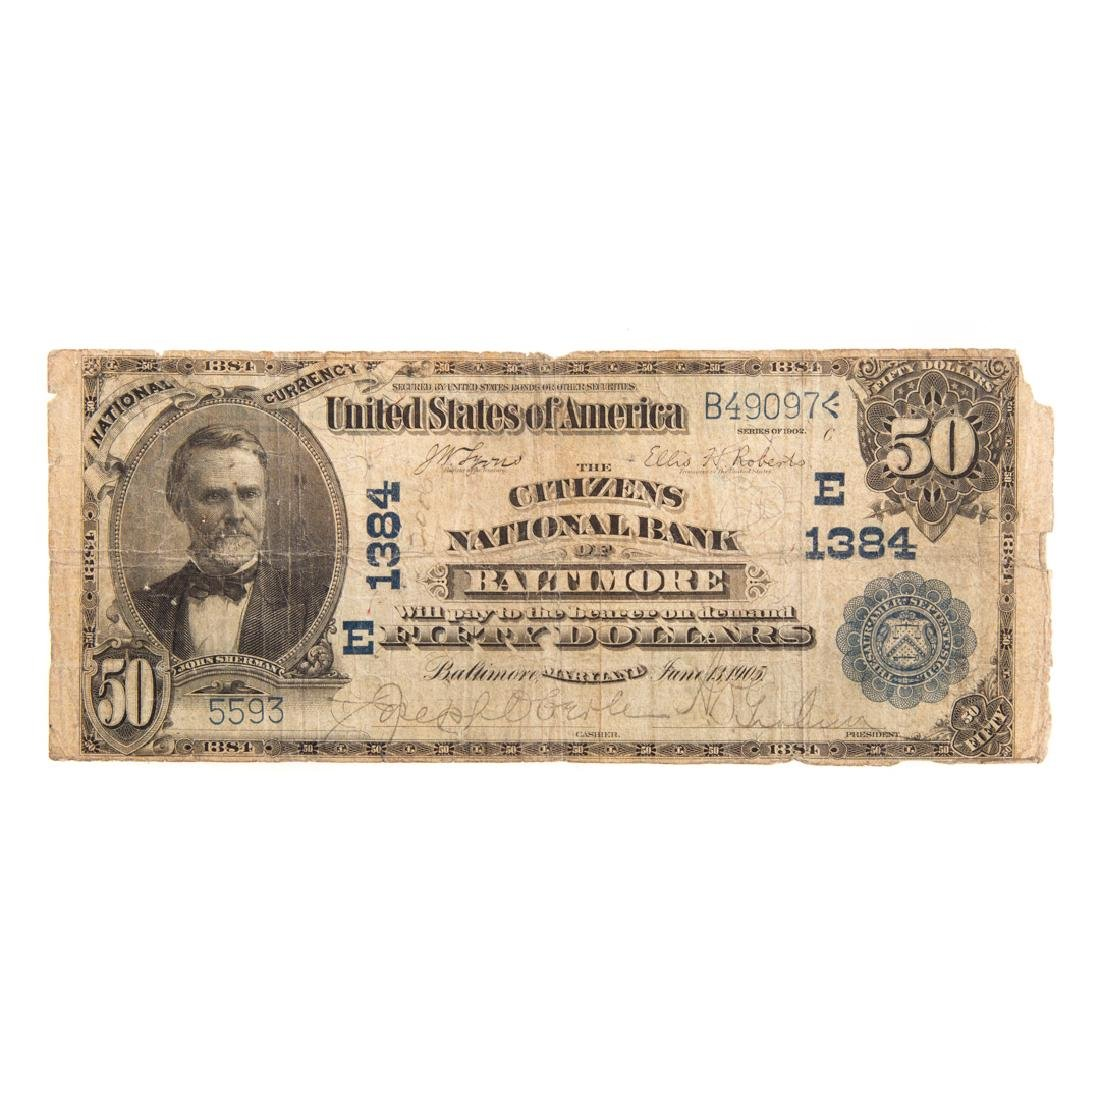 [US] 1902 $50 Date Back CH#1384 Fr-667 Baltimore